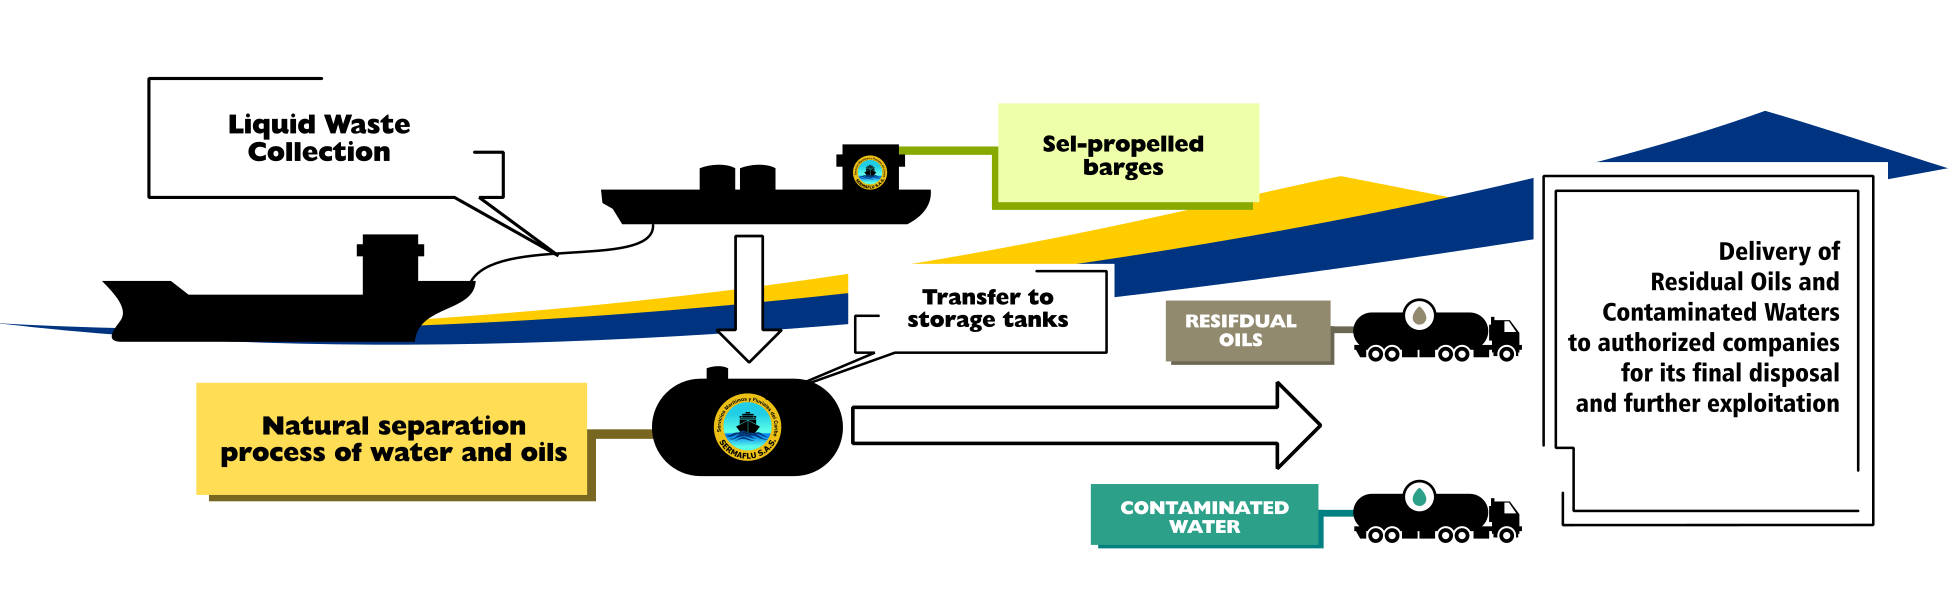 sermaflu ships liquid waste collection service